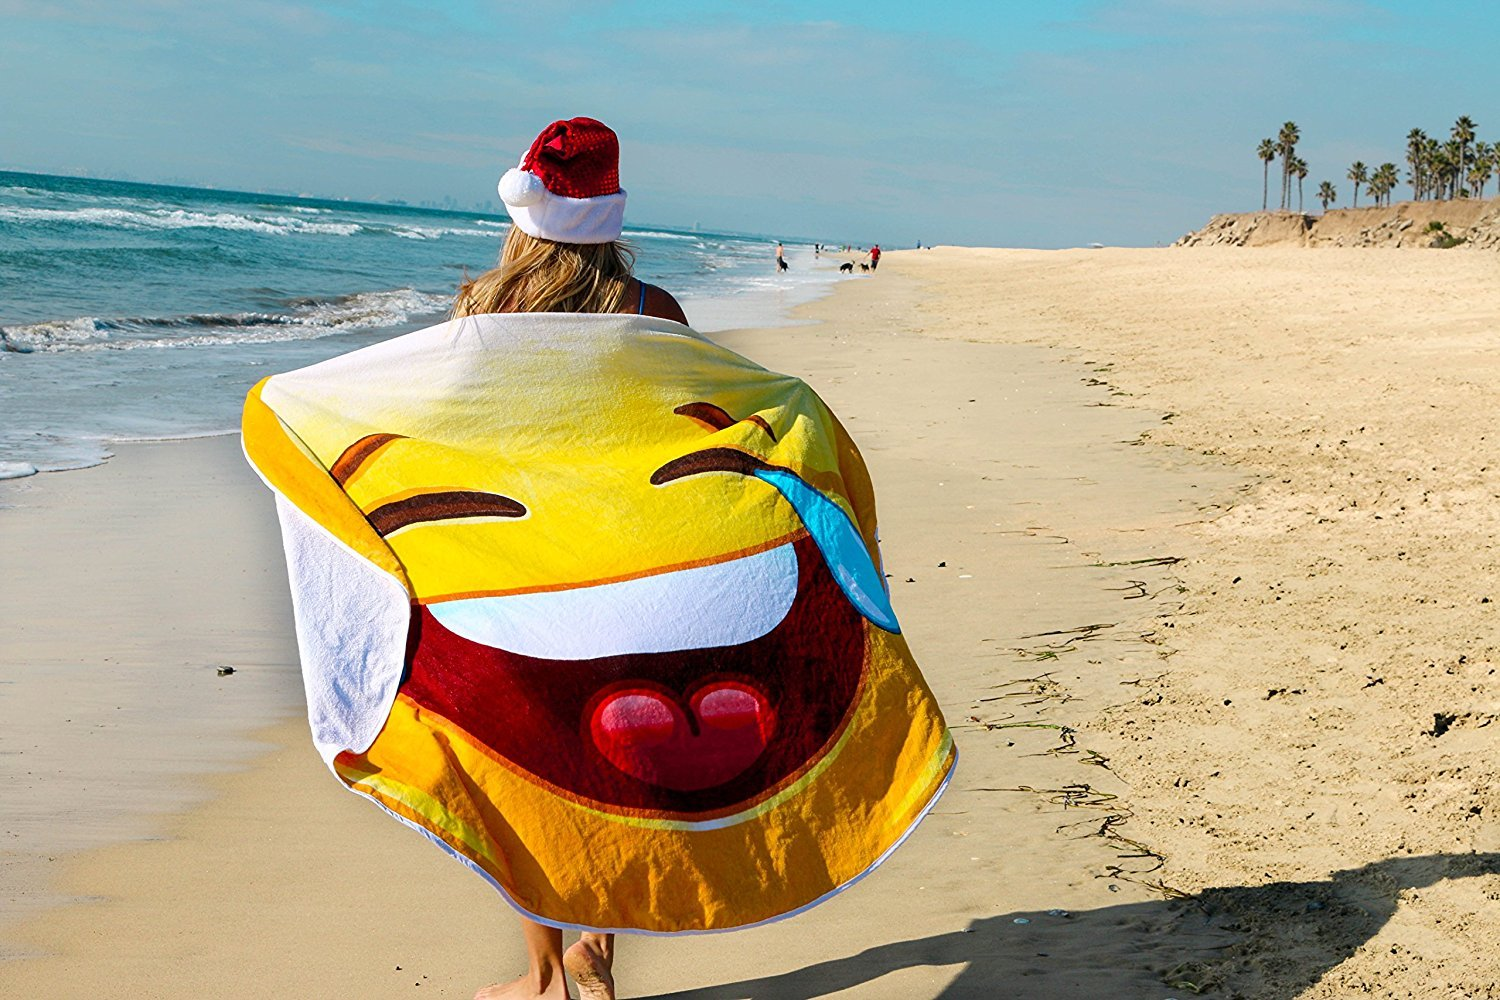 Crying Laughing Emoji Round Towel Chiffon Roundie Cry Laugh Face Circle Beach Blanket Gigantic Emoji Chiffon Towel by CHARM HOME (Image #1)